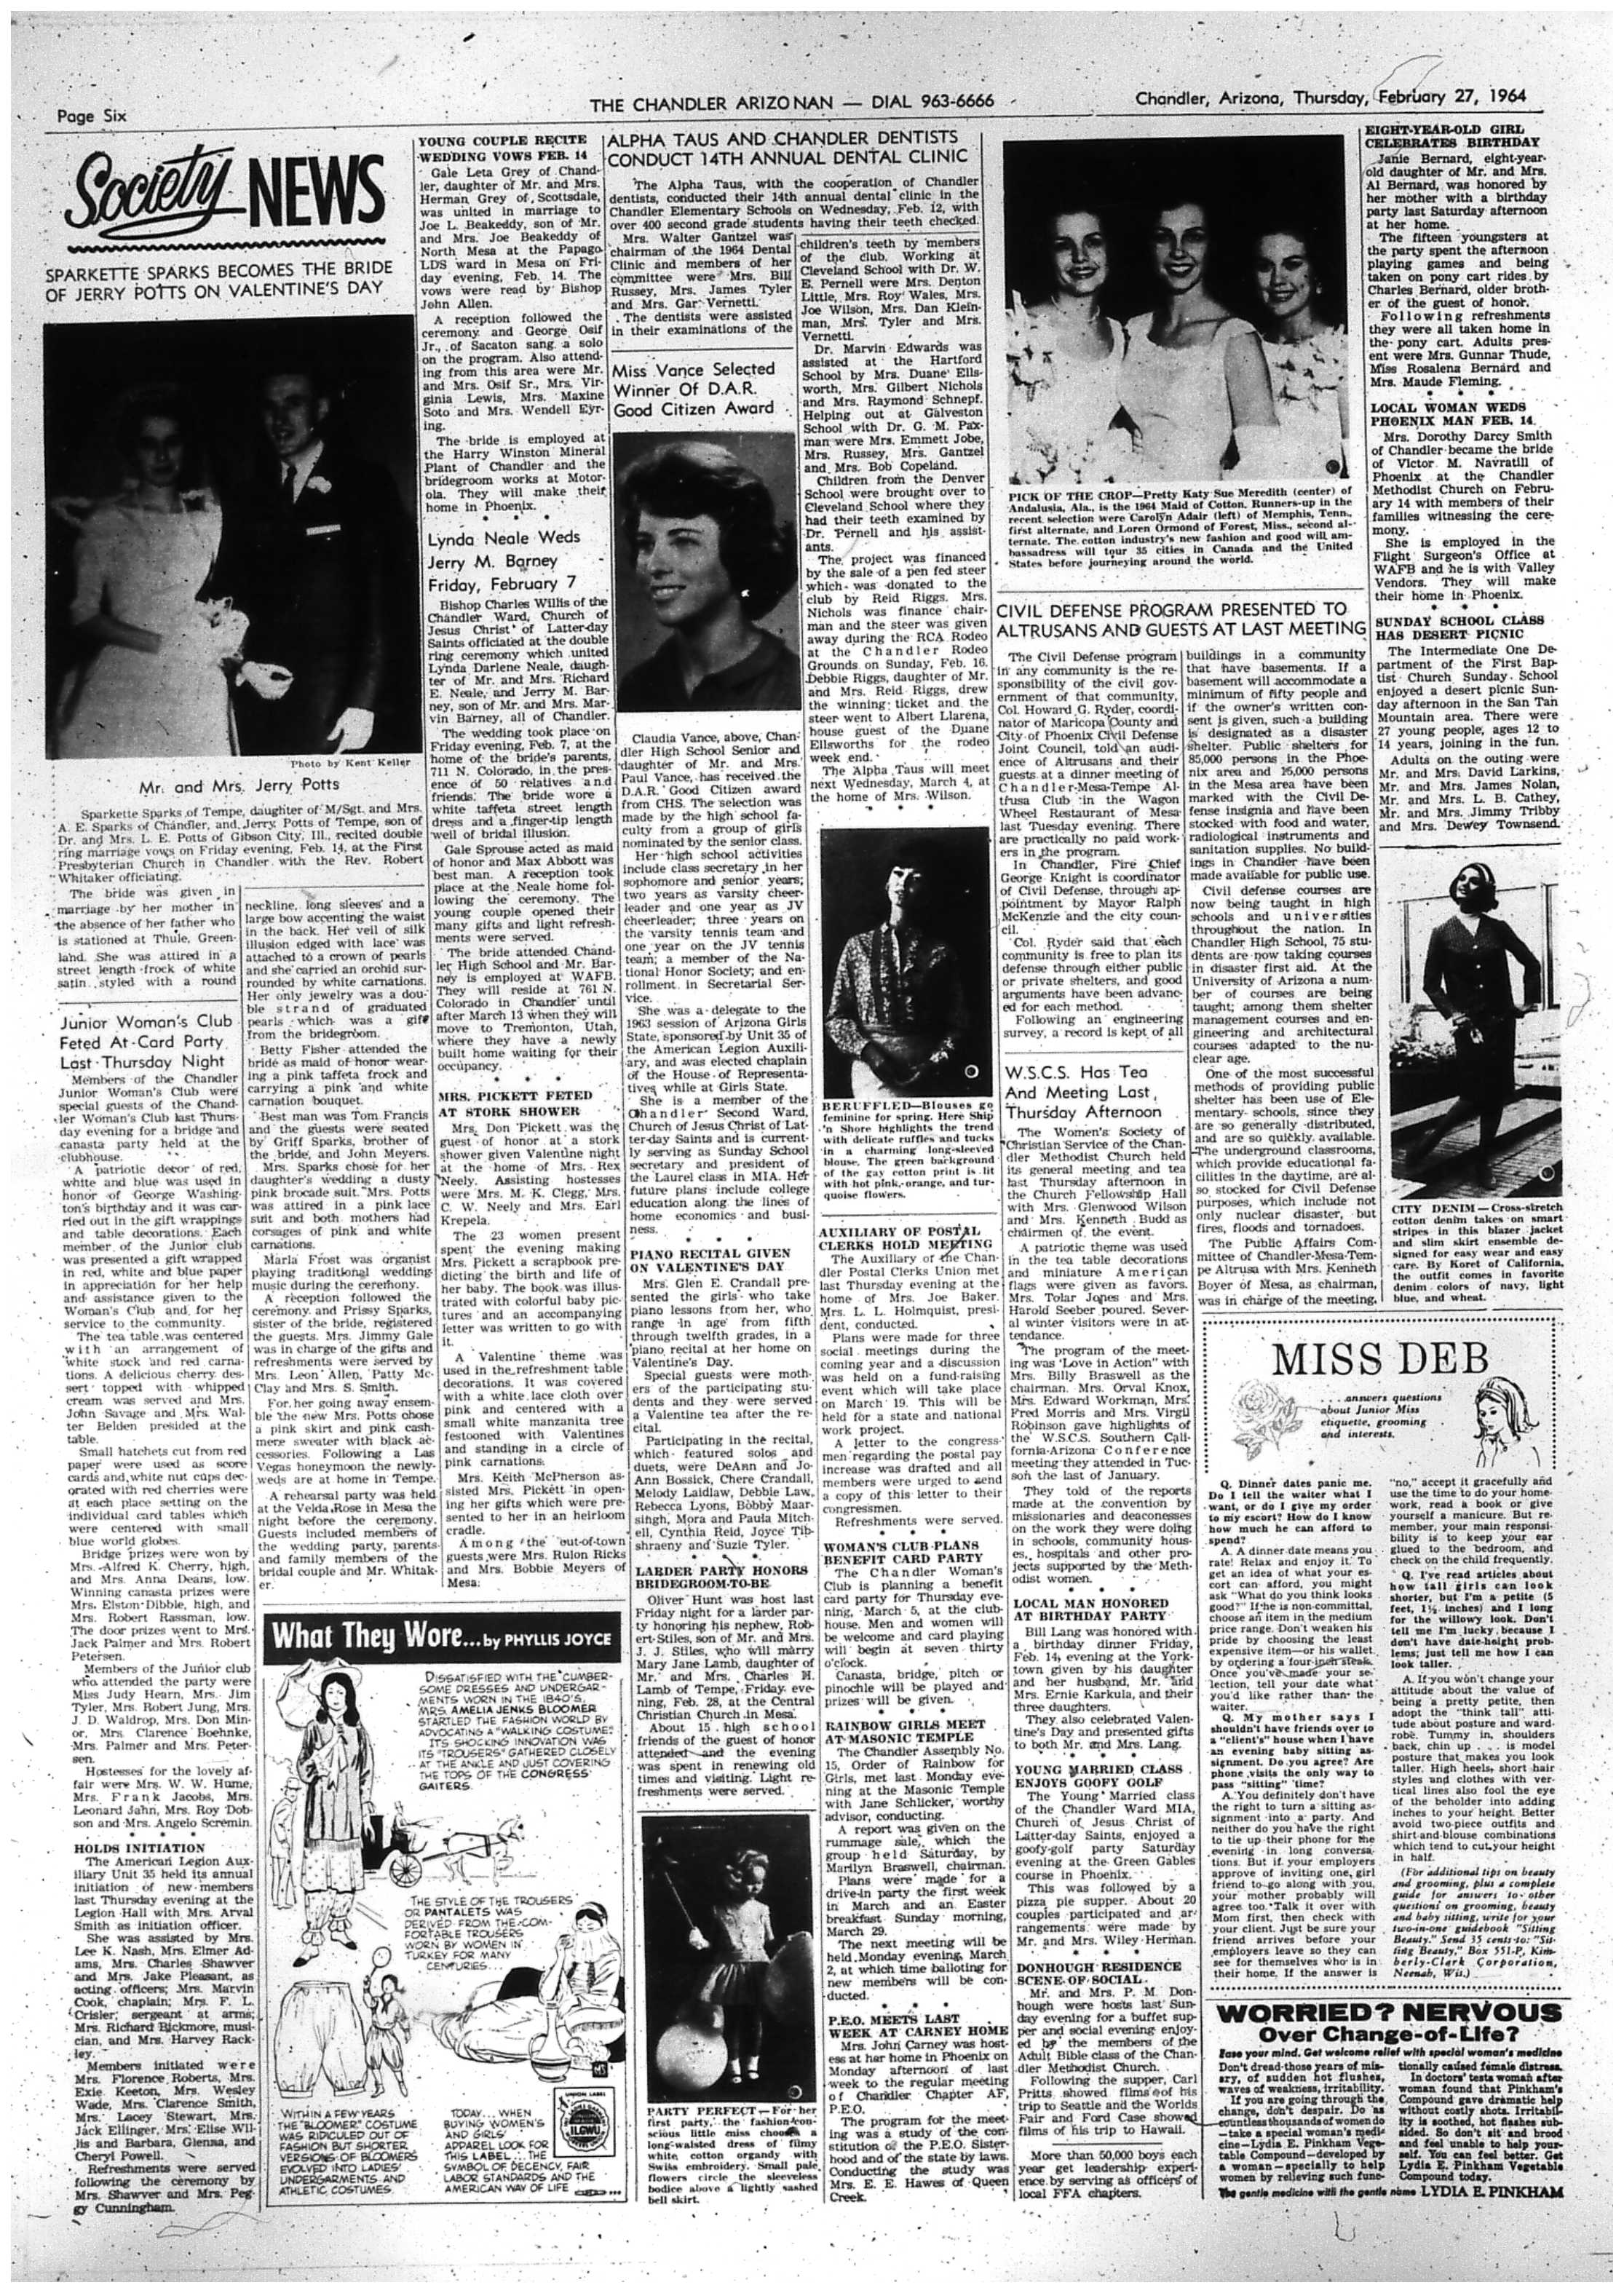 02-27-1964 - Page 6 .jpg